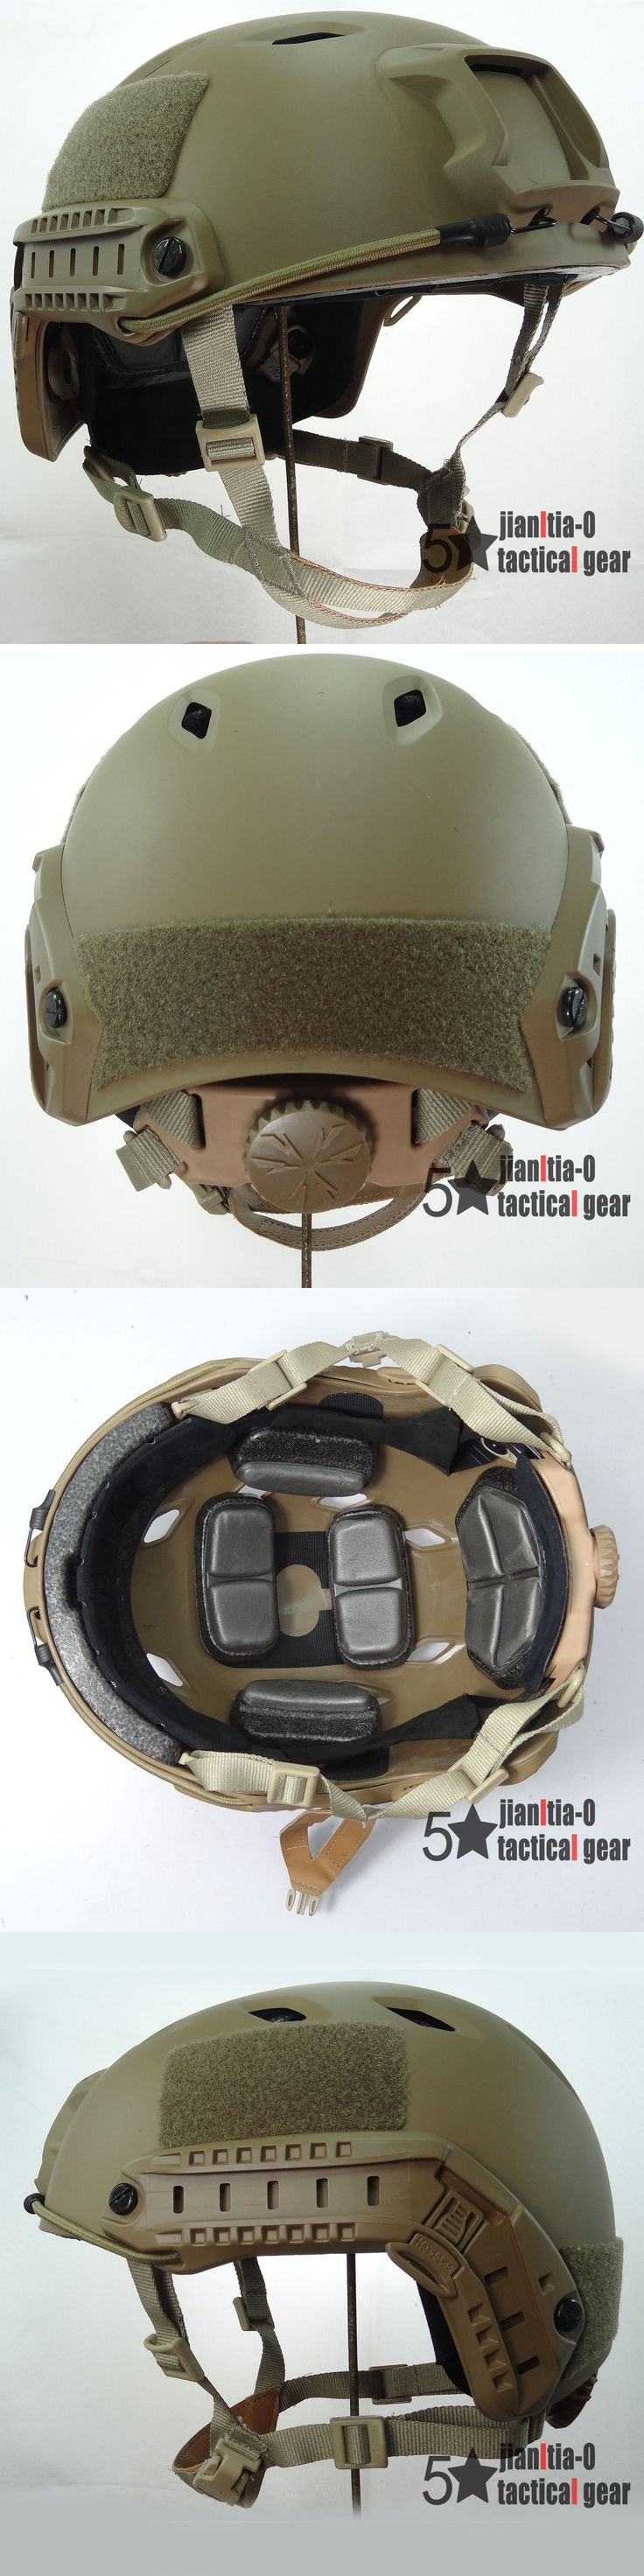 Hats and Headwear 177892: Fast Bj Fast Helmet Tactical W Nvg Shroud Side Rail Anti Riot Function -> BUY IT NOW ONLY: $35.99 on eBay!